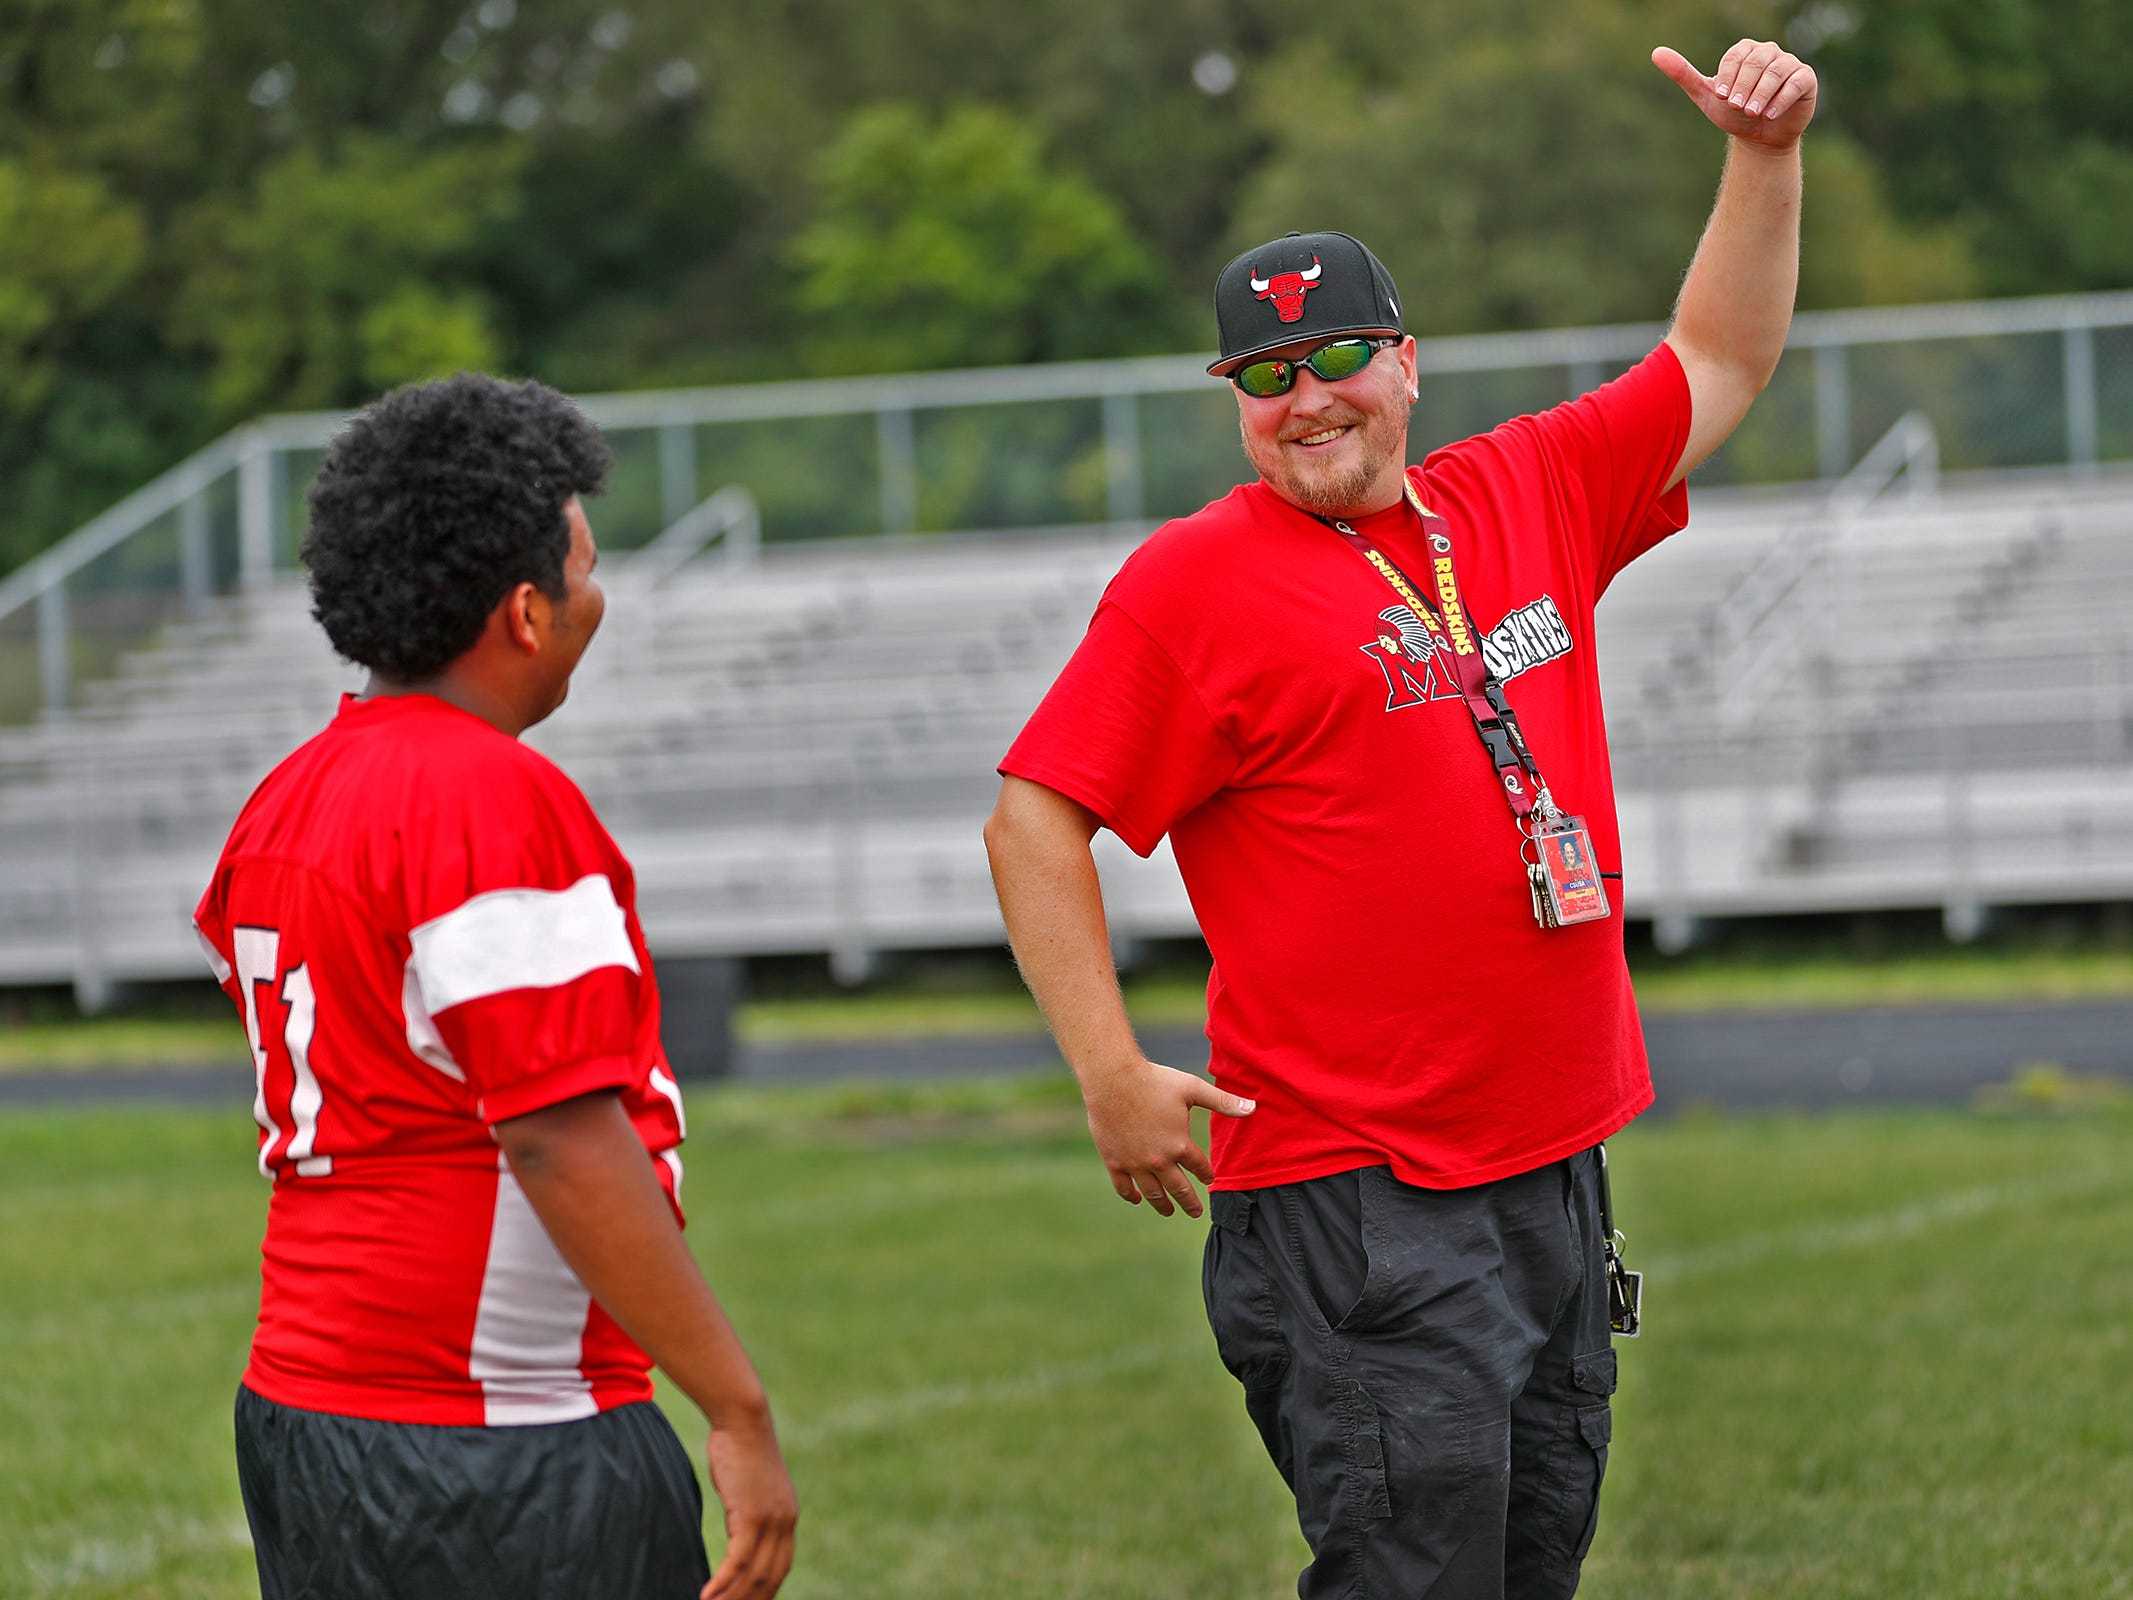 Jerod Kienitz, special teams and receiving coach for the Manual High School football team, right, works with team kicker, Lester, during practice at Emmerich Manual High School, Monday, July 31, 2018.  Lester moved to Indianapolis when he was 15 years old and is set to graduate from Manual in 2019.  Lester, an undocumented immigrant from Honduras, dreams of going to college.  He hopes that football will help him pay for that dream.